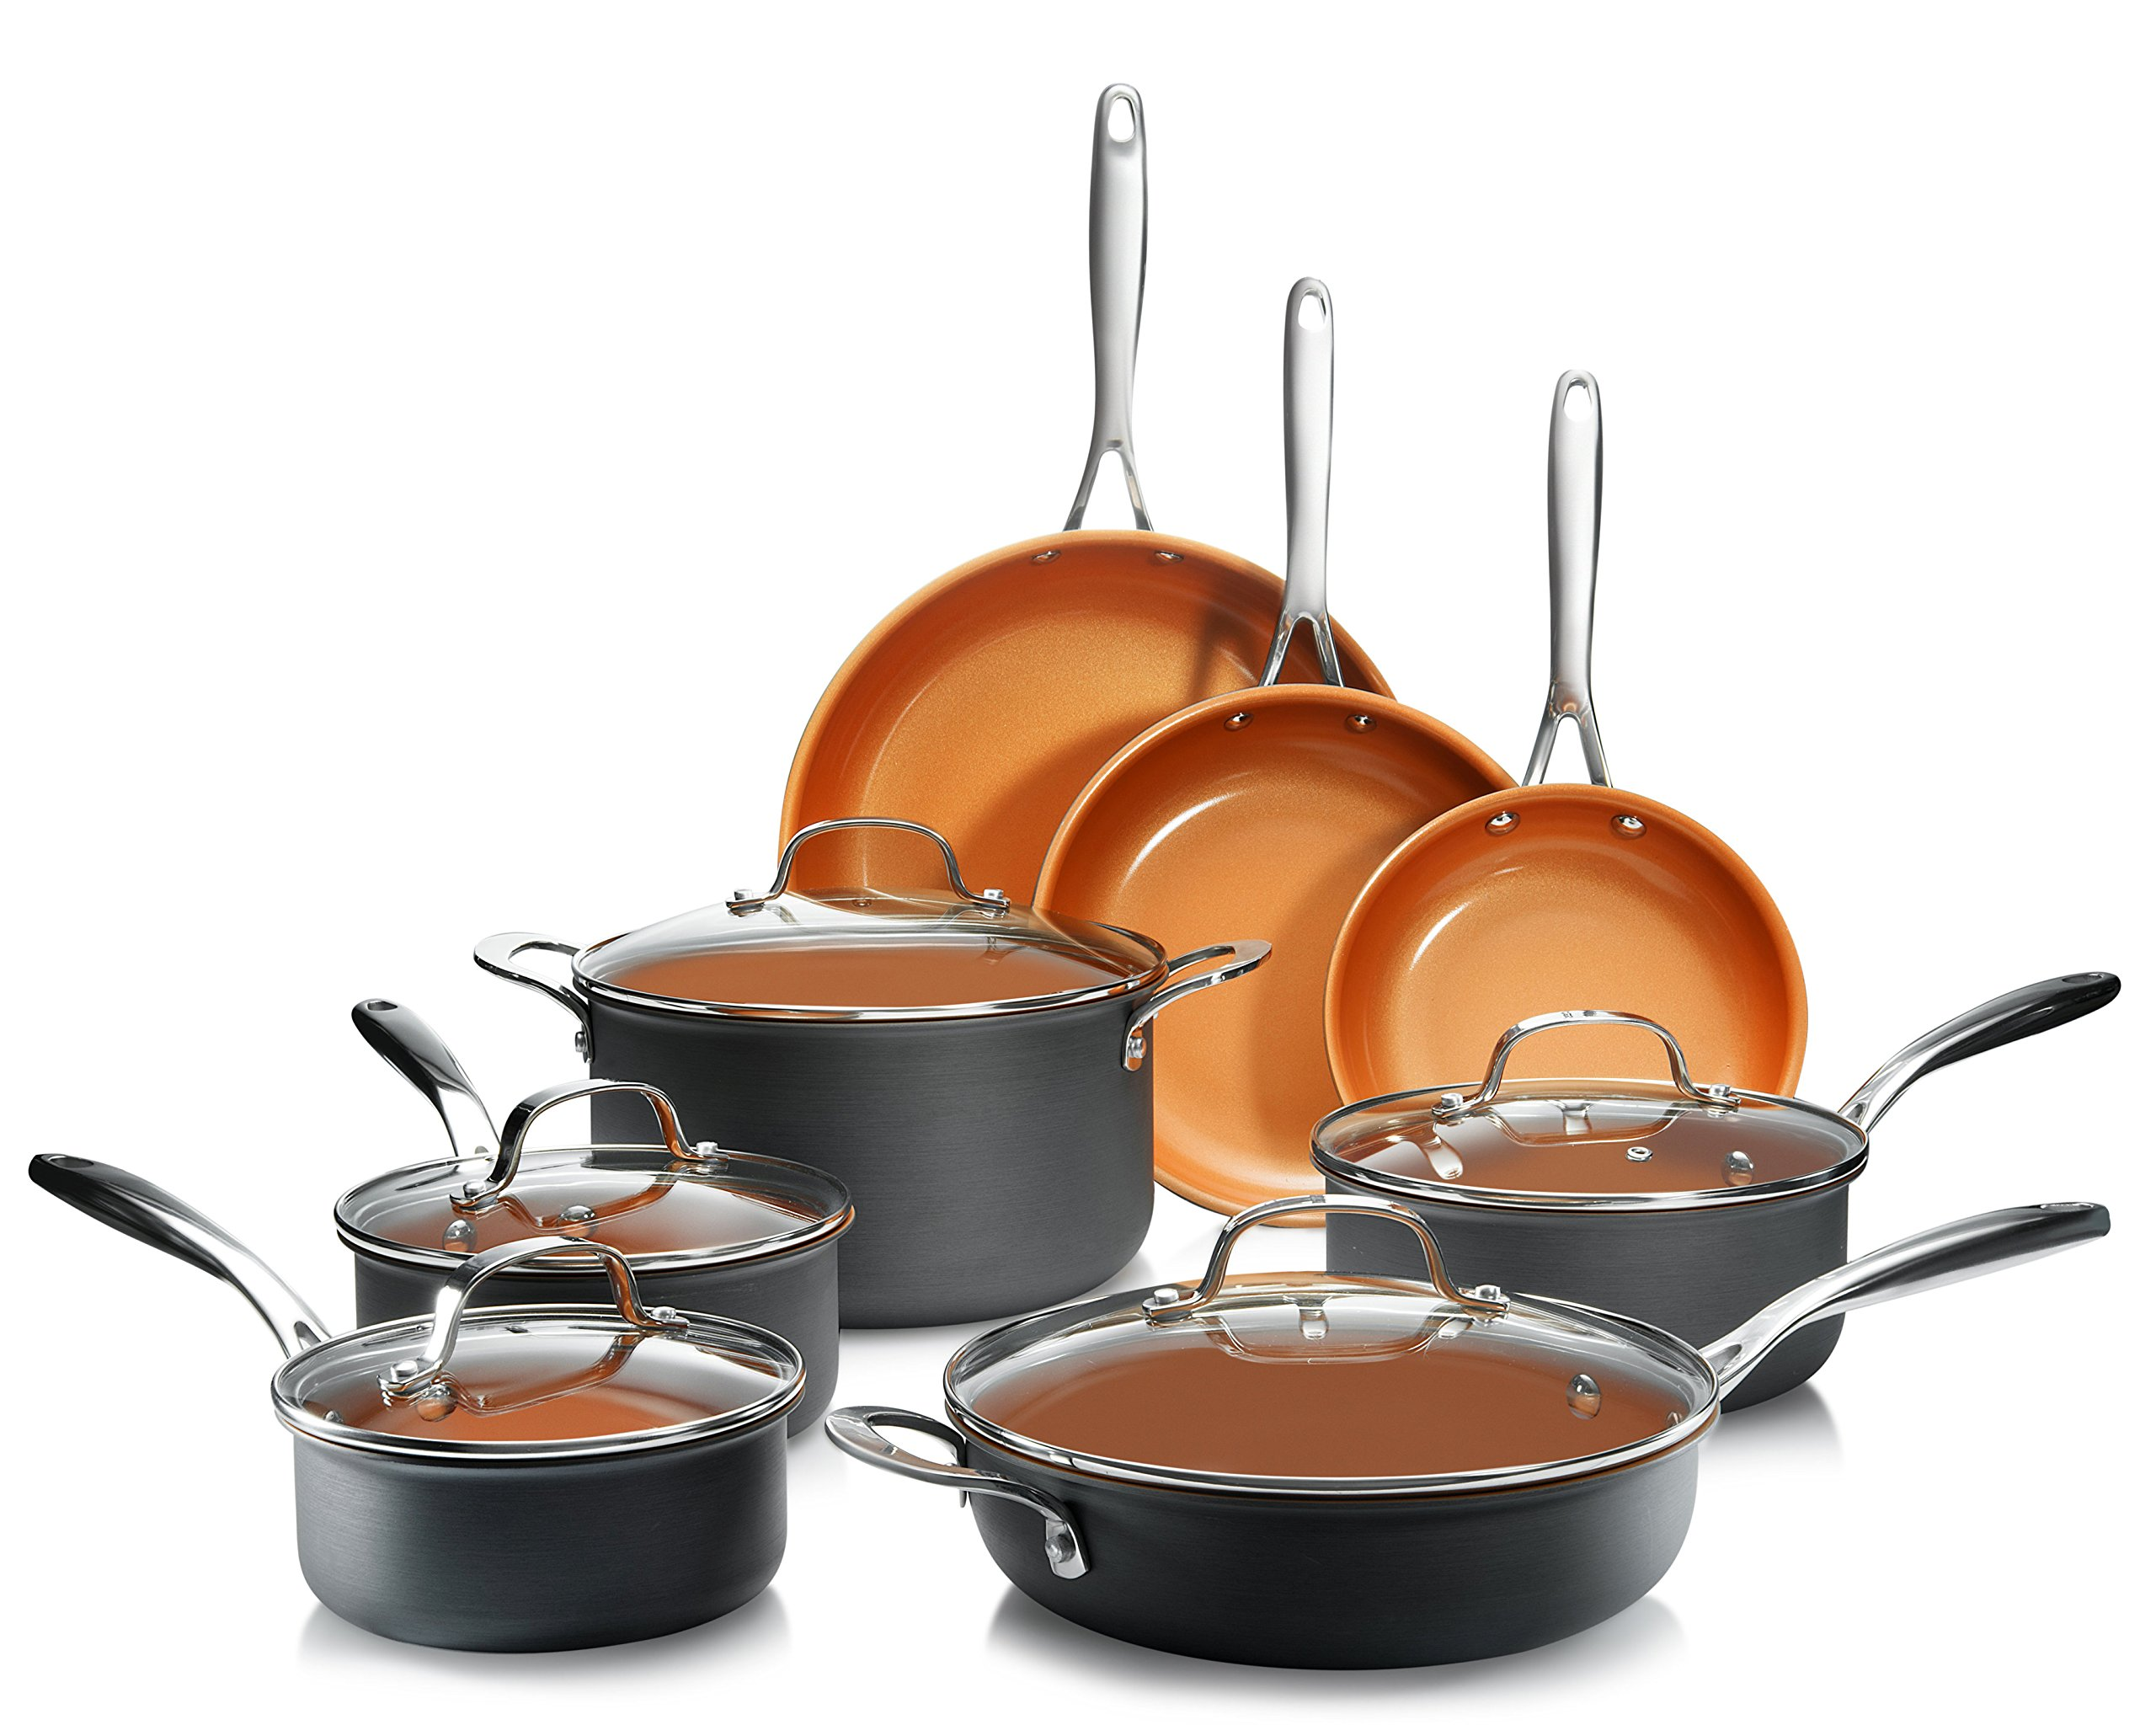 Gotham Steel Professional– 13 Piece Hard Anodized Premium Cookware Set with Ultimate Nonstick Titanium and Ceramic Coating, Oven and Dishwasher Safe